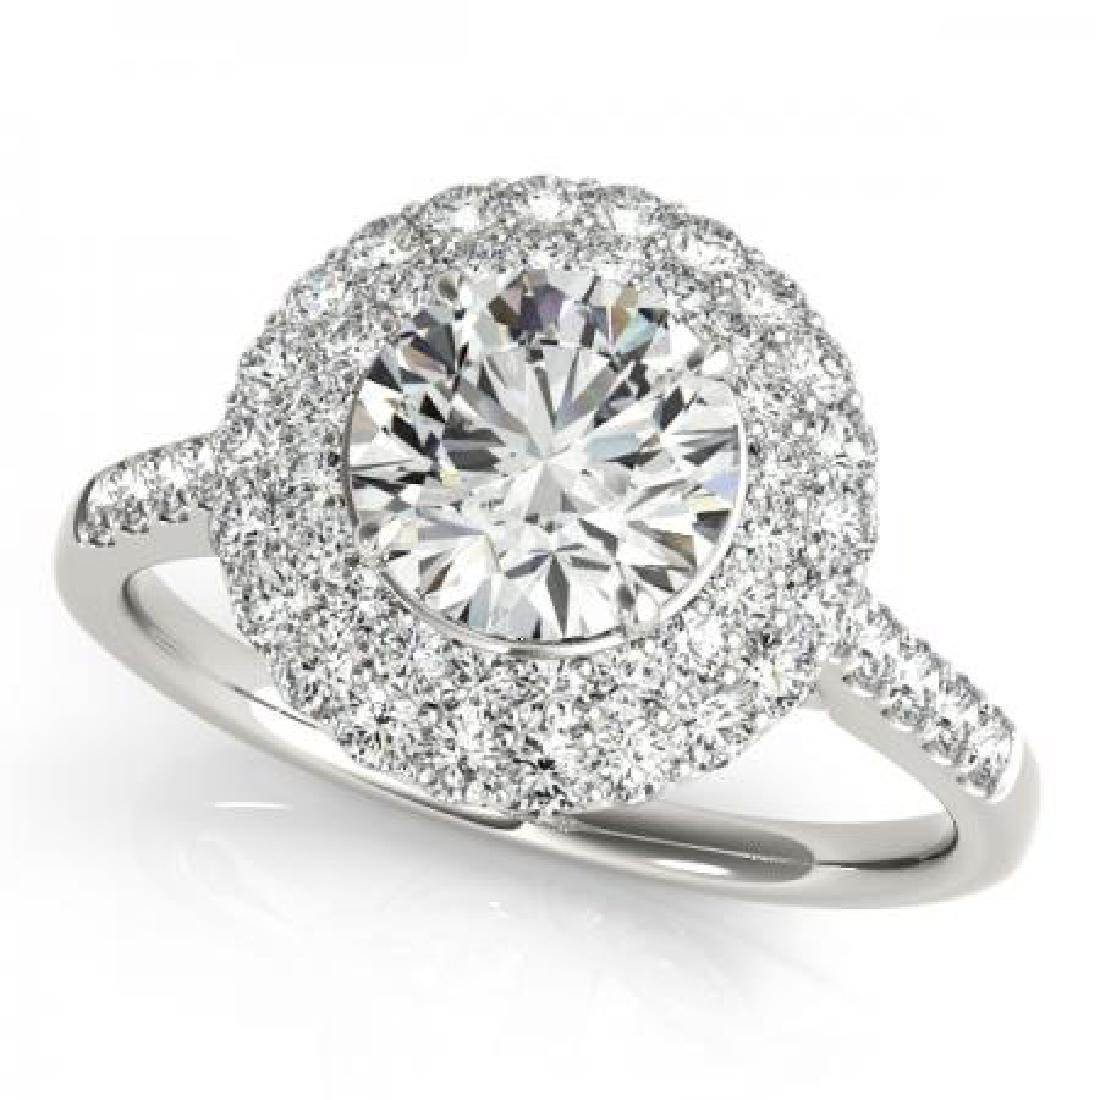 CERTIFIED PLATINUM 1.30 CT G-H/VS-SI1 DIAMOND HALO ENGA